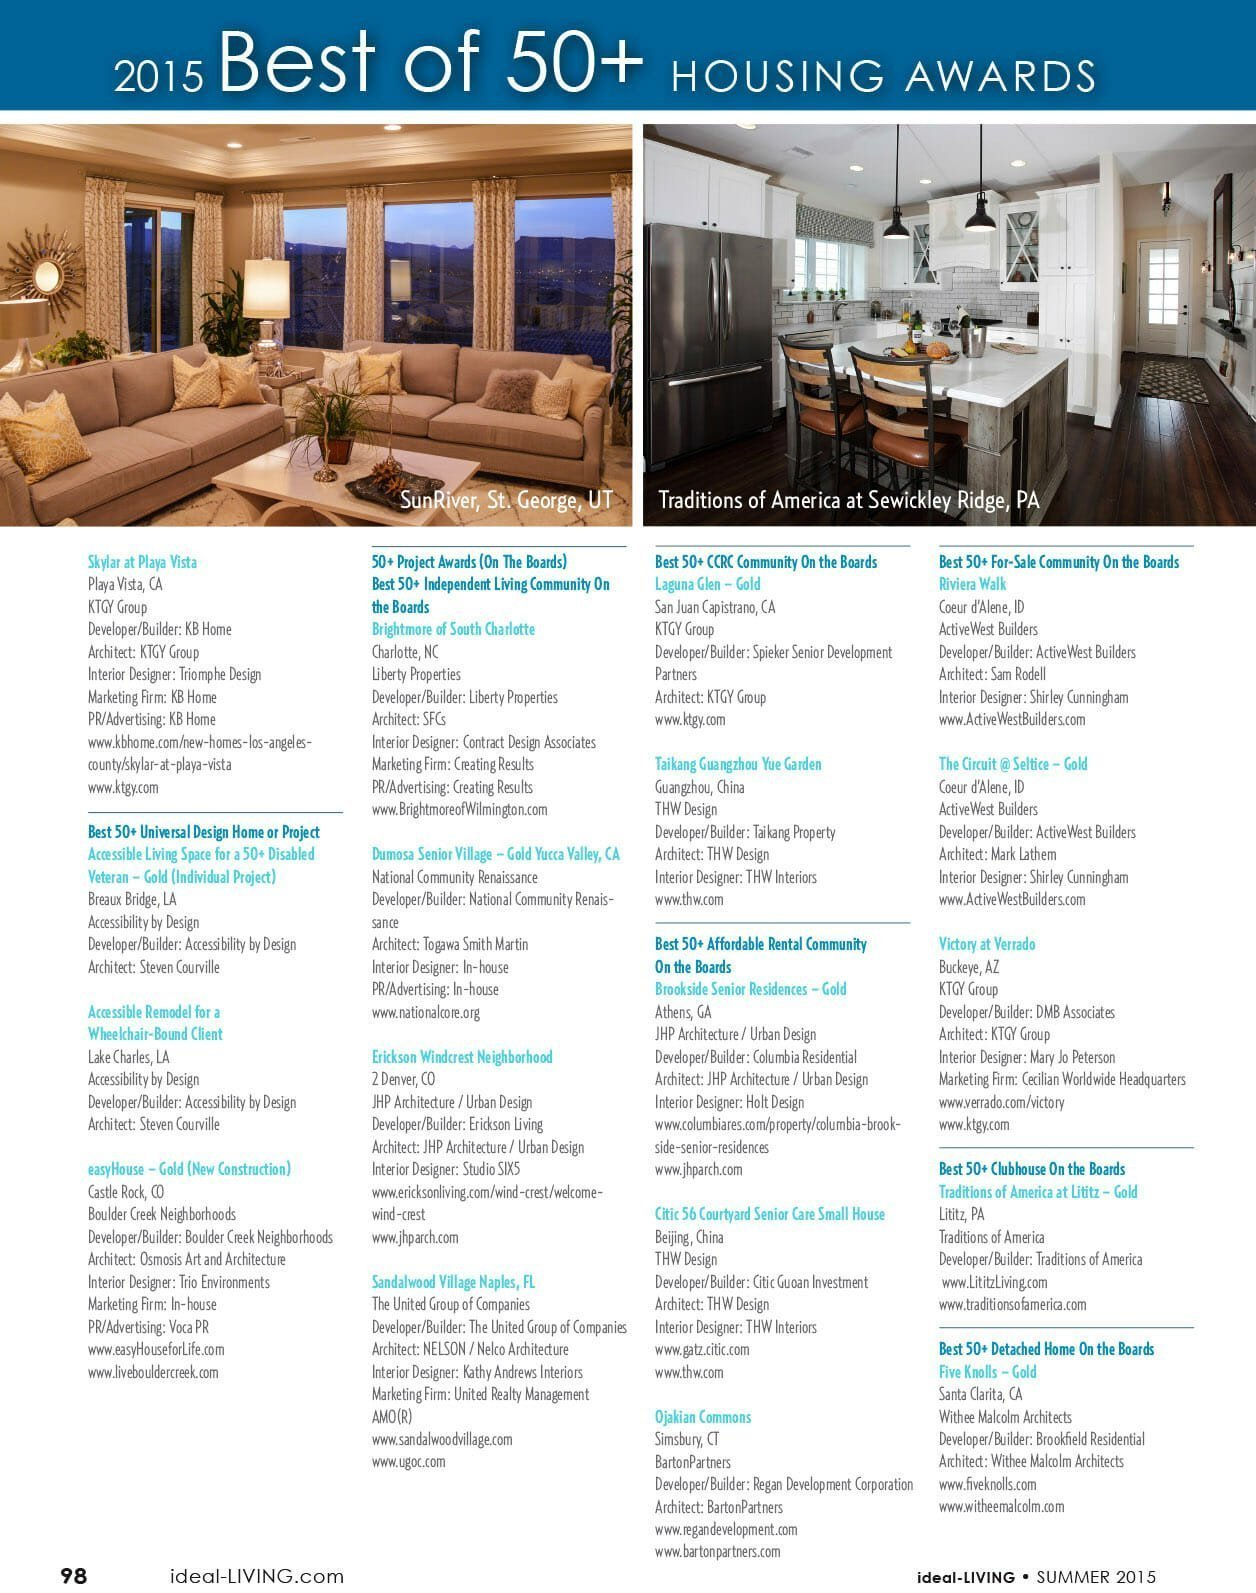 2015 Best of 50+ housing awards page 5